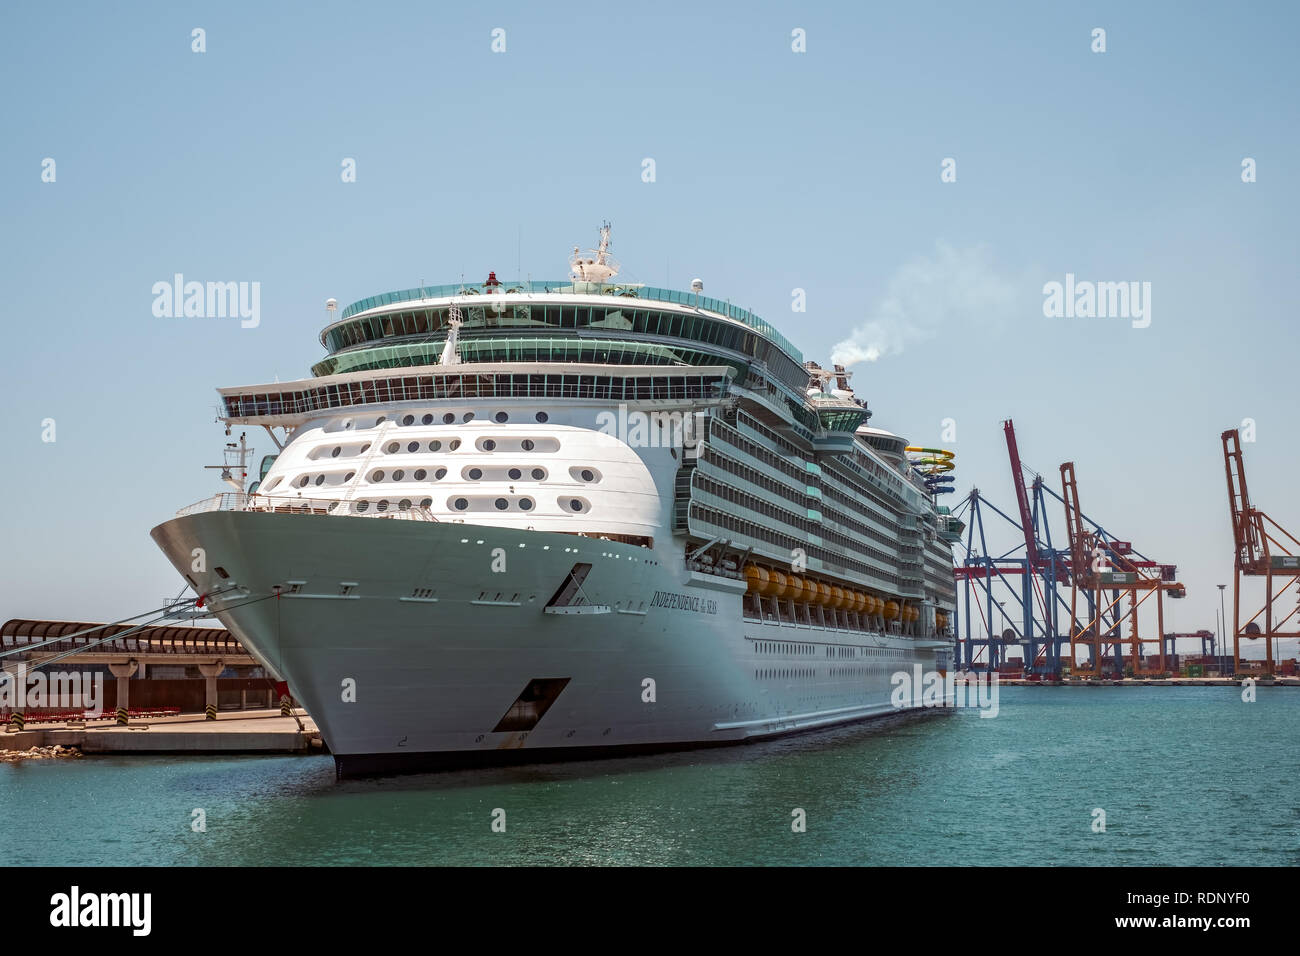 Malaga, Spain - June 26, 2018. Royal Caribbean Independence of the Seas cruise ship docked at the port of Malaga city, Costa del Sol, Malaga Province, - Stock Image